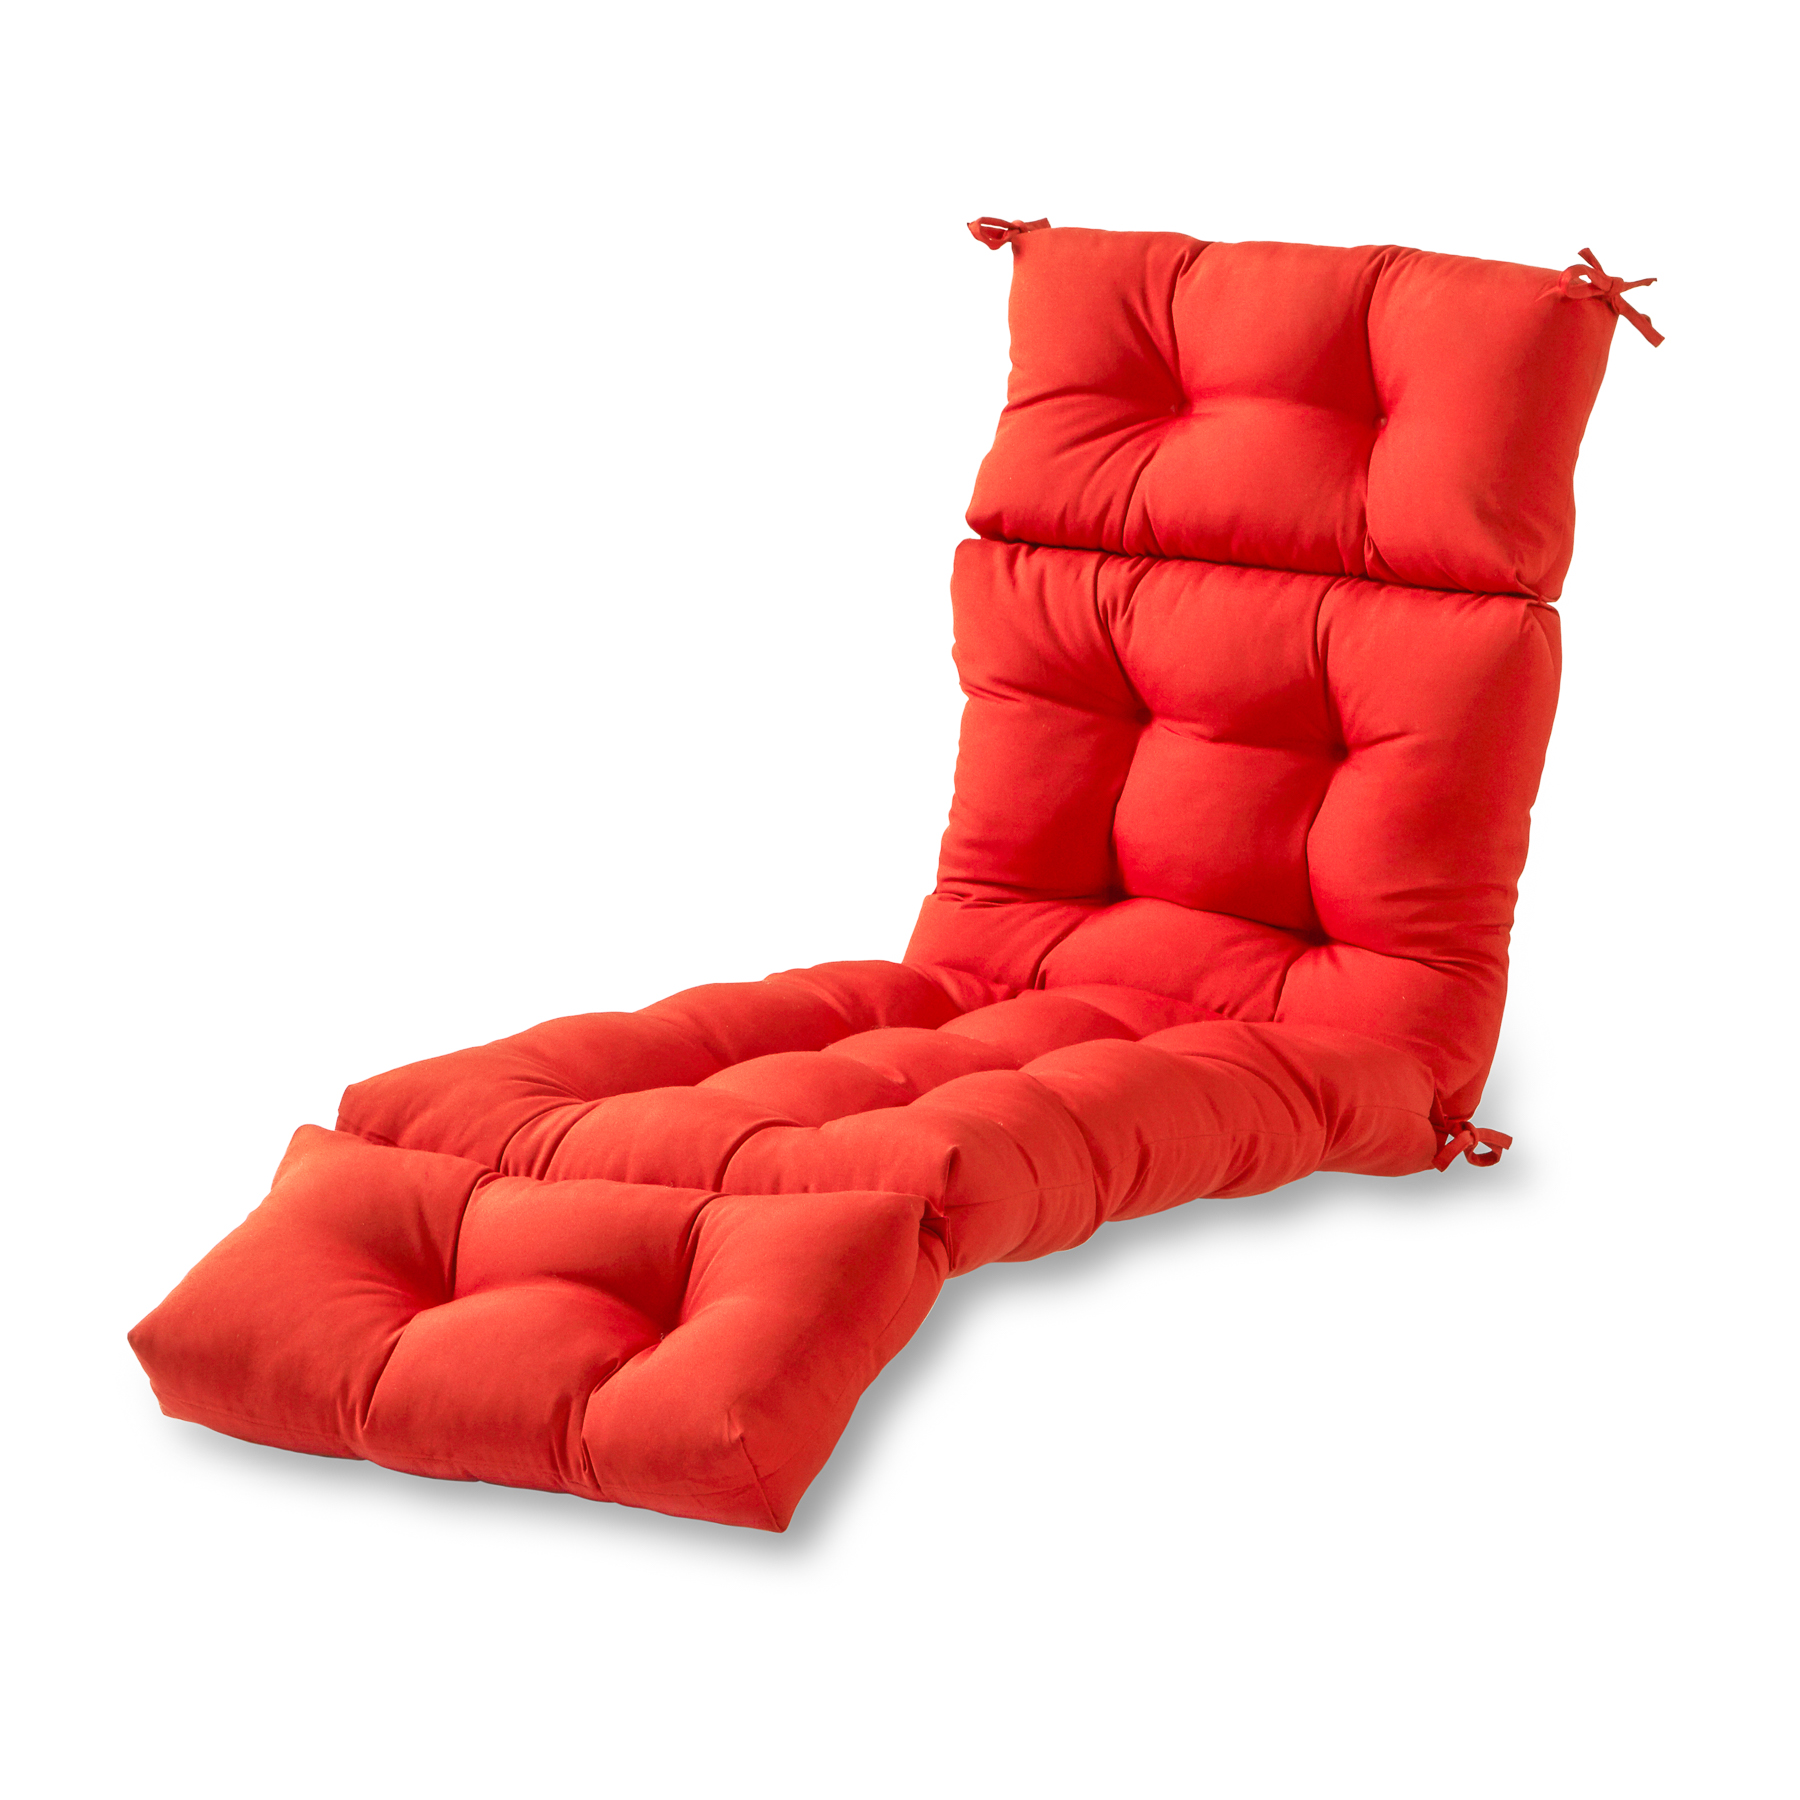 Greendale Home Fashions Solid Outdoor Chaise Lounge Cushion